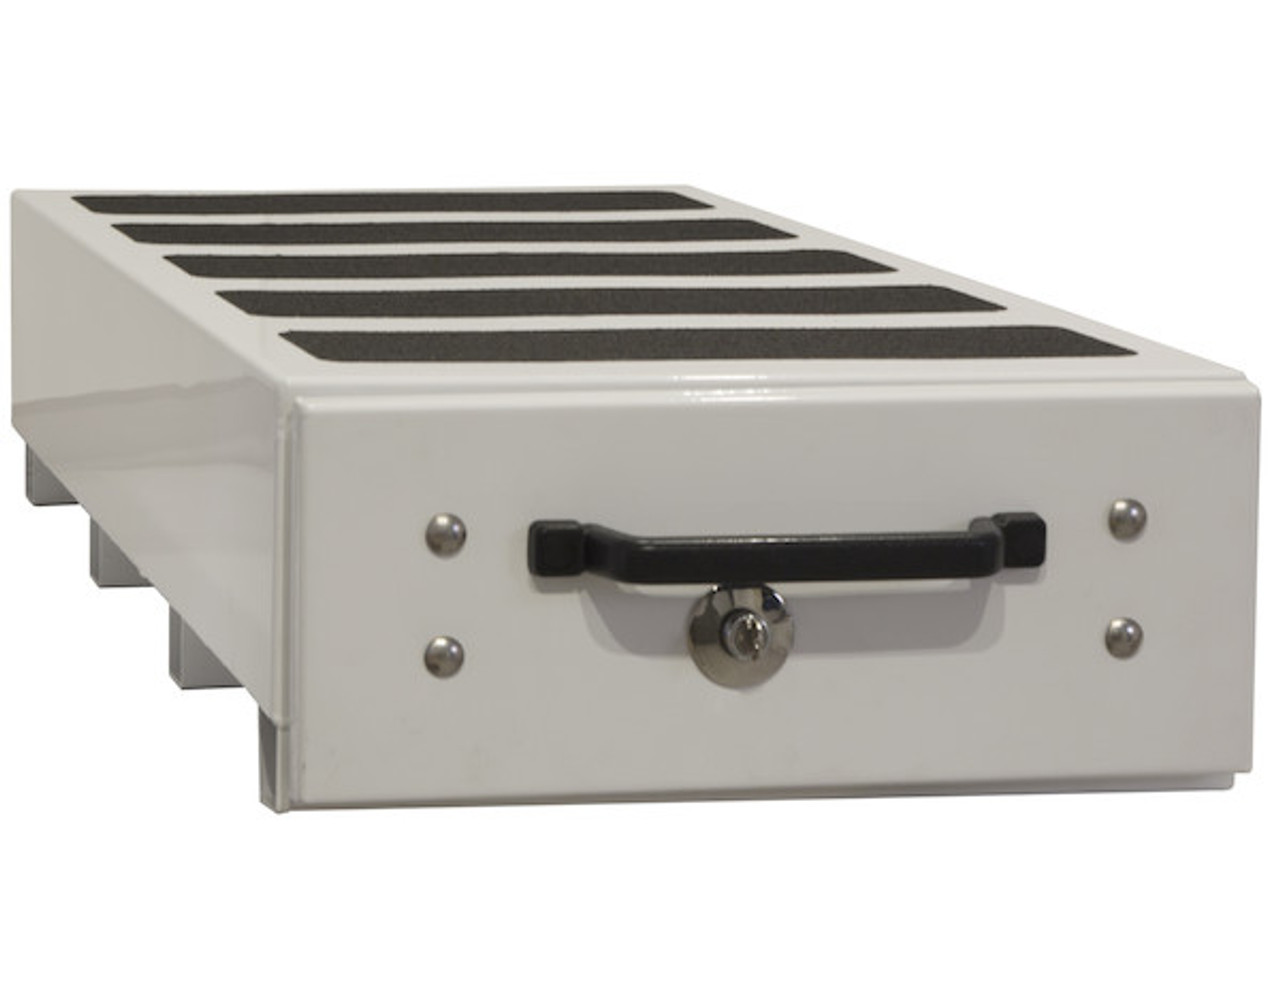 """1718430 BUYERS SMOOTH WHITE ALUMINUM SLIDE OUT TRUCK BED TOOLBOX 12""""Hx48""""Dx40""""W PICTURE # 3"""